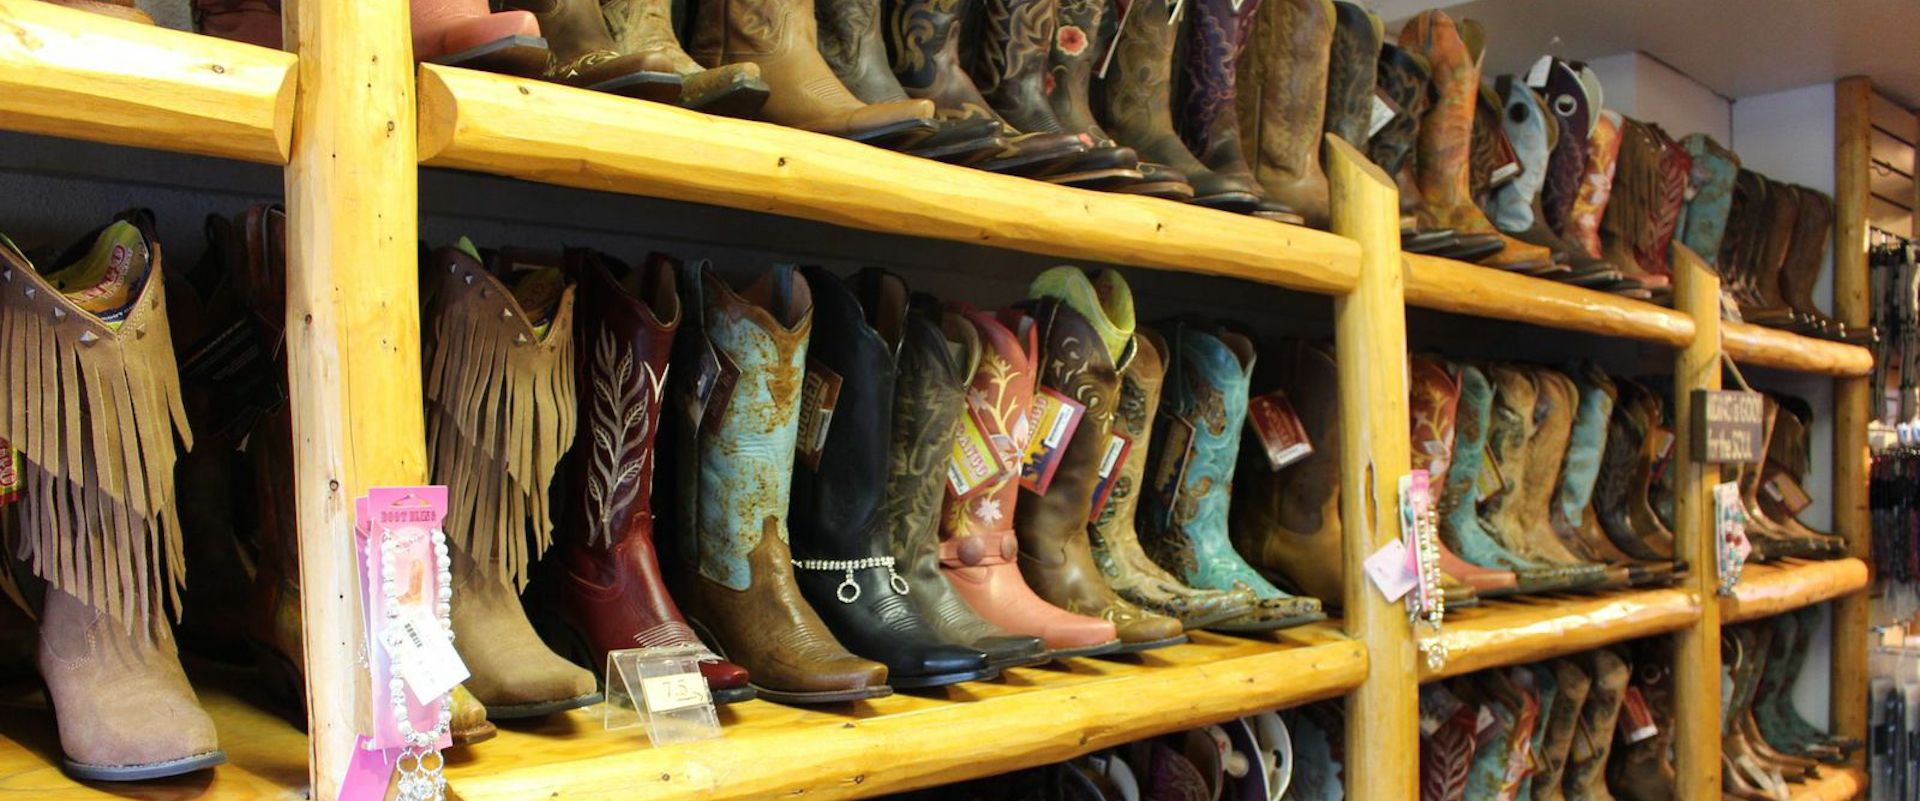 Cowboy Boots at the Trail Riders Store in Banff, Canadian Rockies